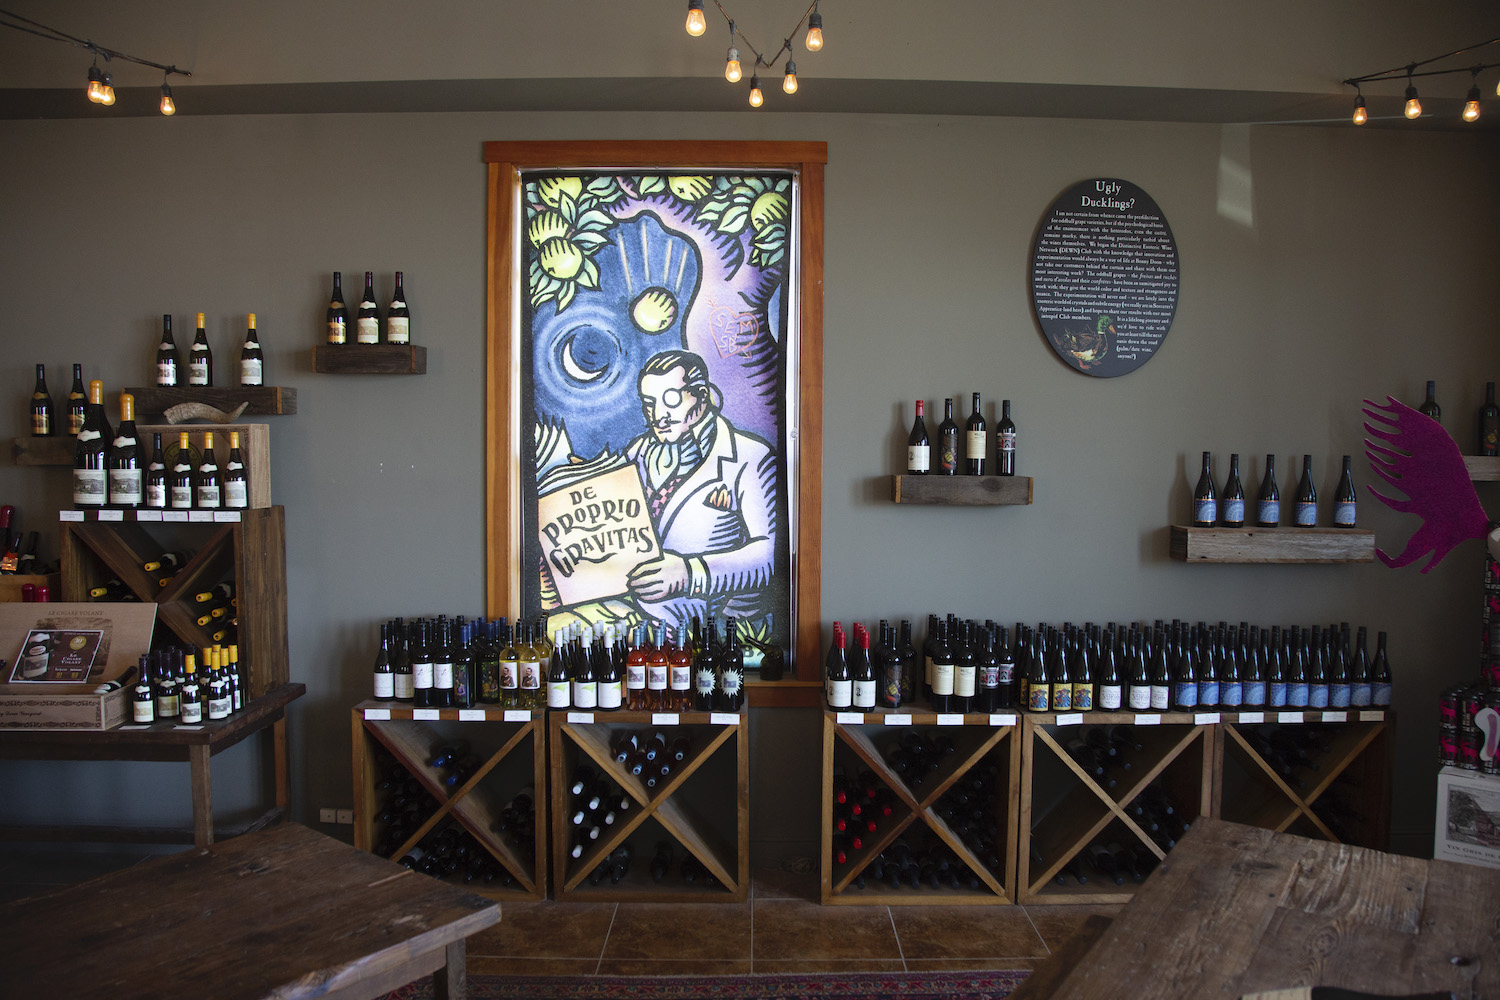 Biodynamic, Bonny Doon, biodynamic wine, where to drink biodynamic wine, biodynamic tasting room, The Press, California wine